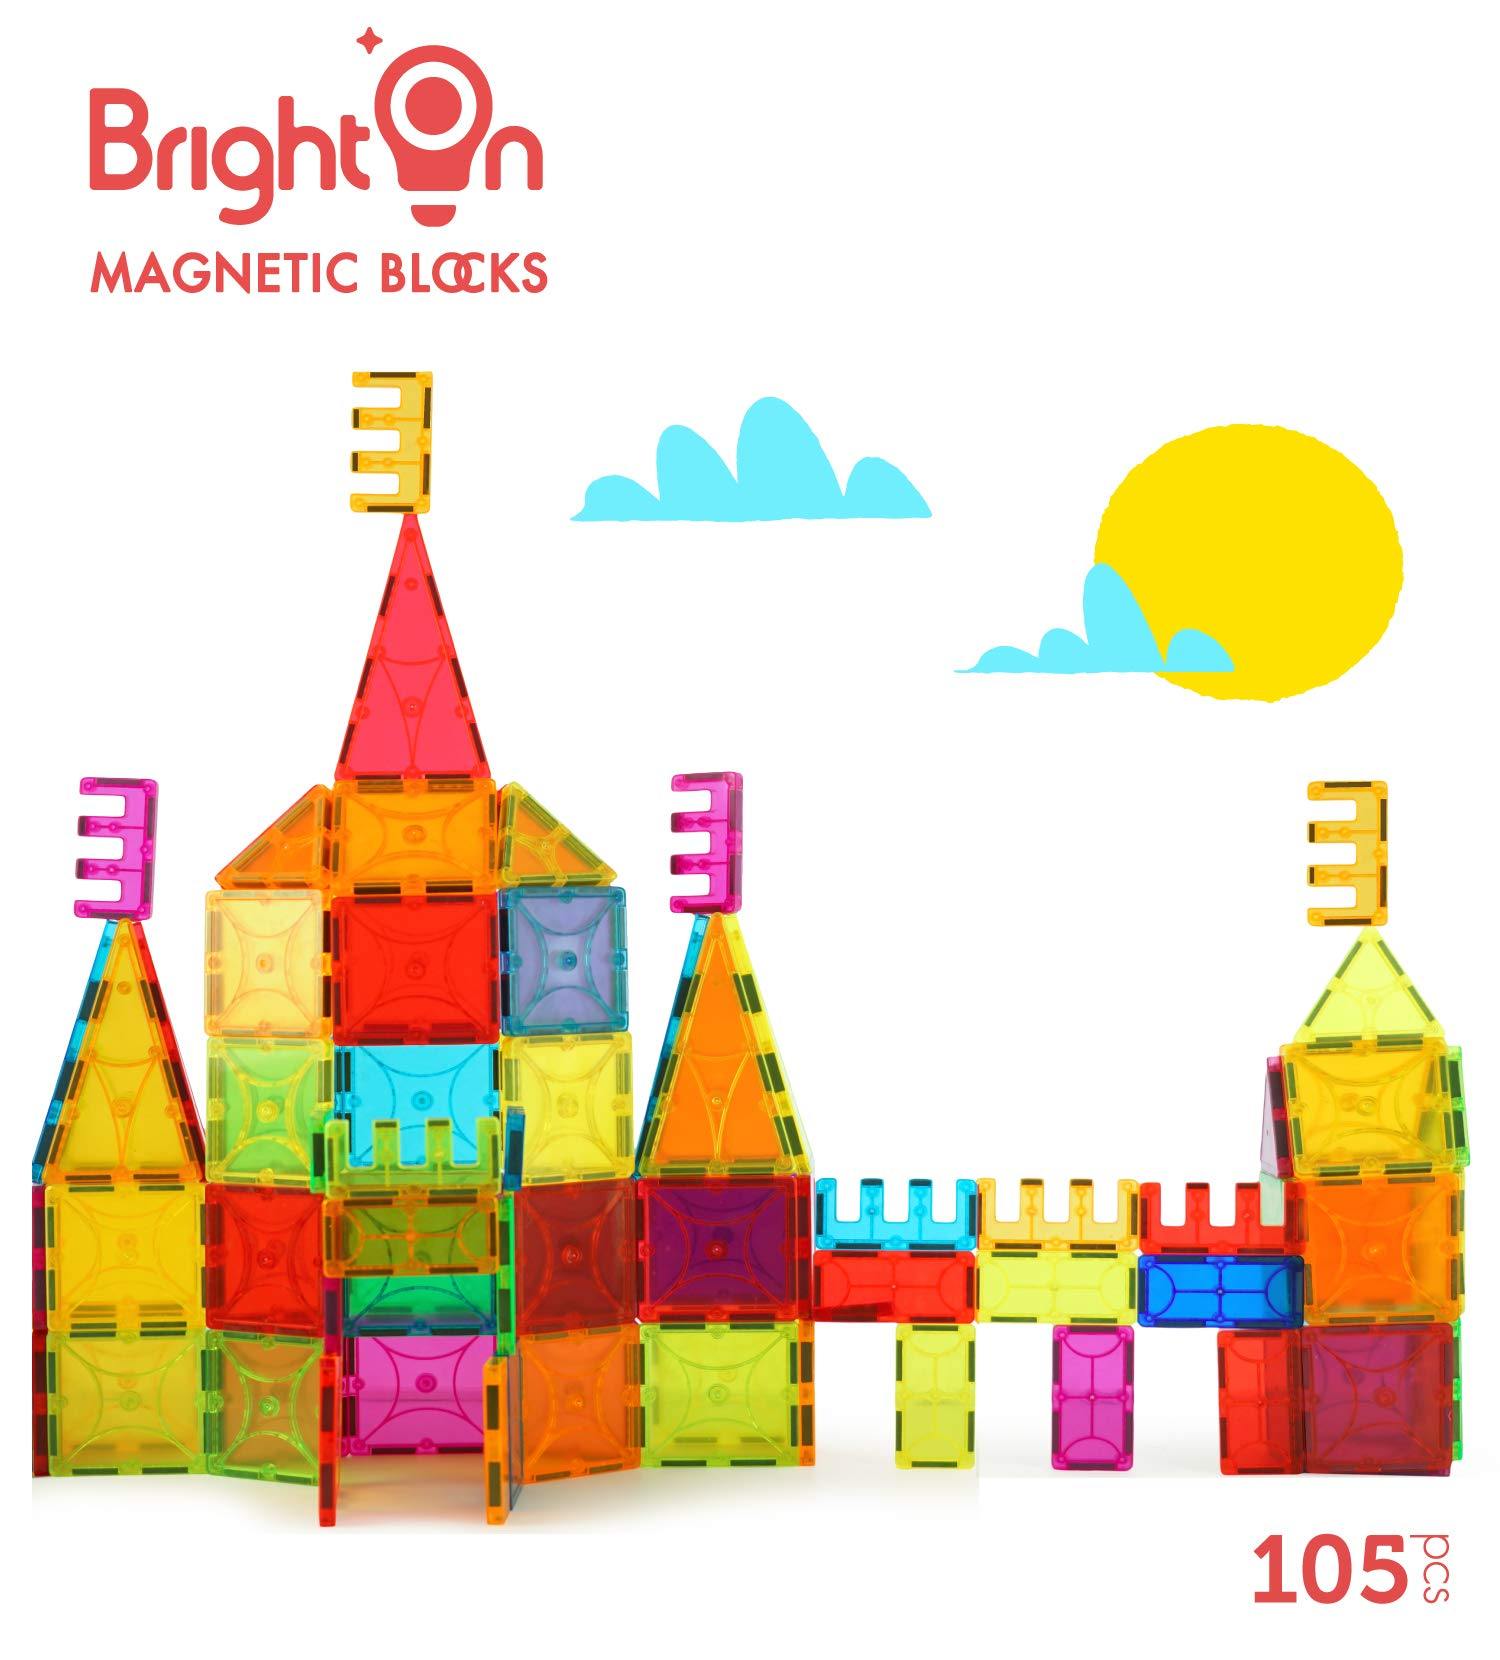 BrightOn Educational Kids Toys Magnetic Building Blocks, Creative Toys 3D Magnetic Blocks for Kids, Imagination Magnets Building Tiles for Children 105Pcs by BrightOn (Image #3)